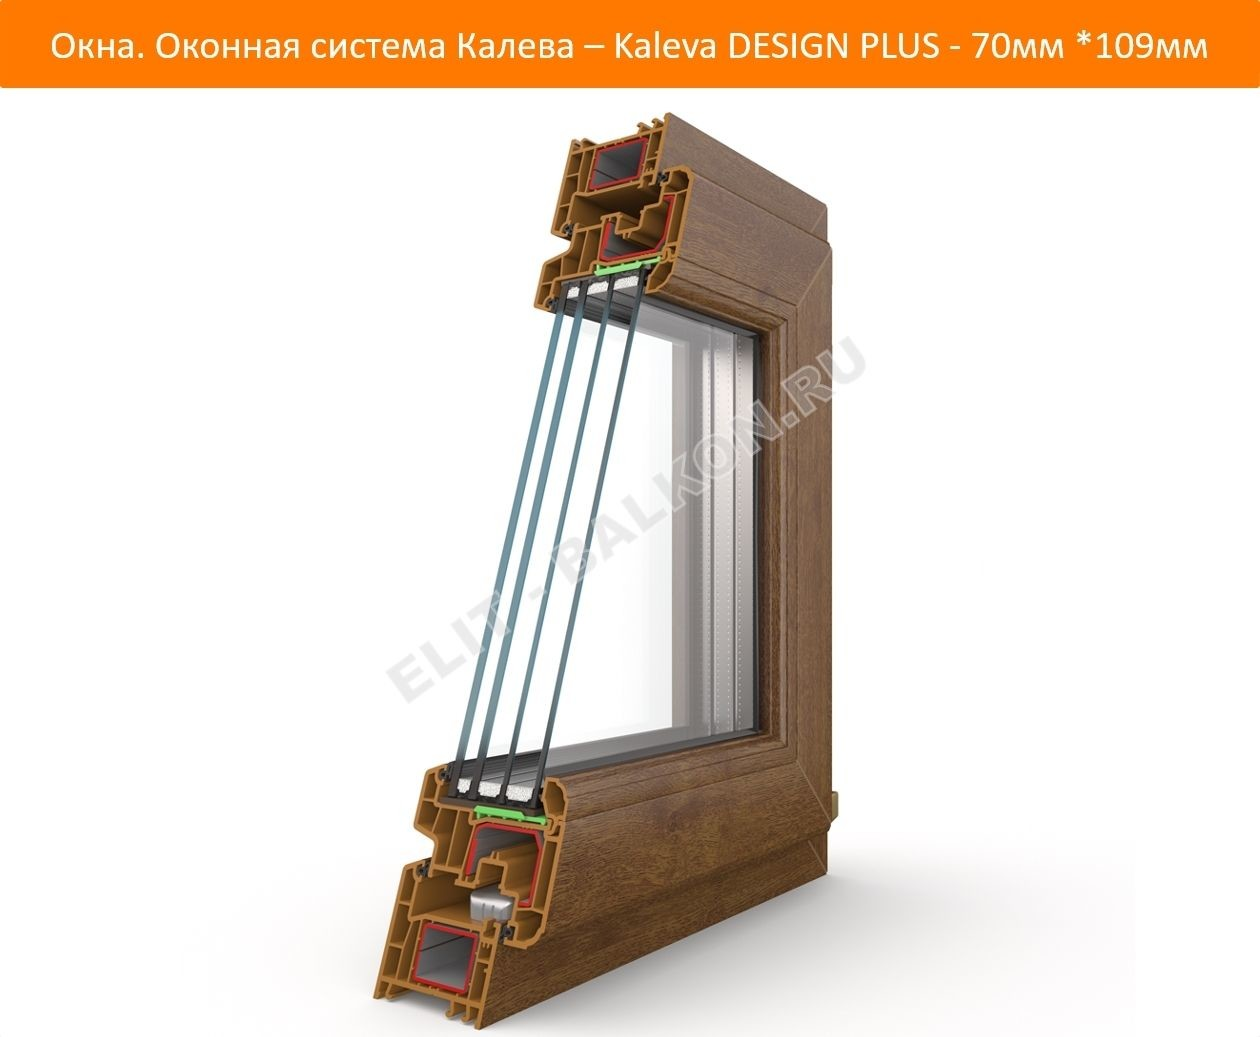 Okna. Okonnaya sistema Kaleva Kaleva DESIGN PLUS 70mm 109mm 1 1 - DESIGN PLUS – на страже вашего покоя!